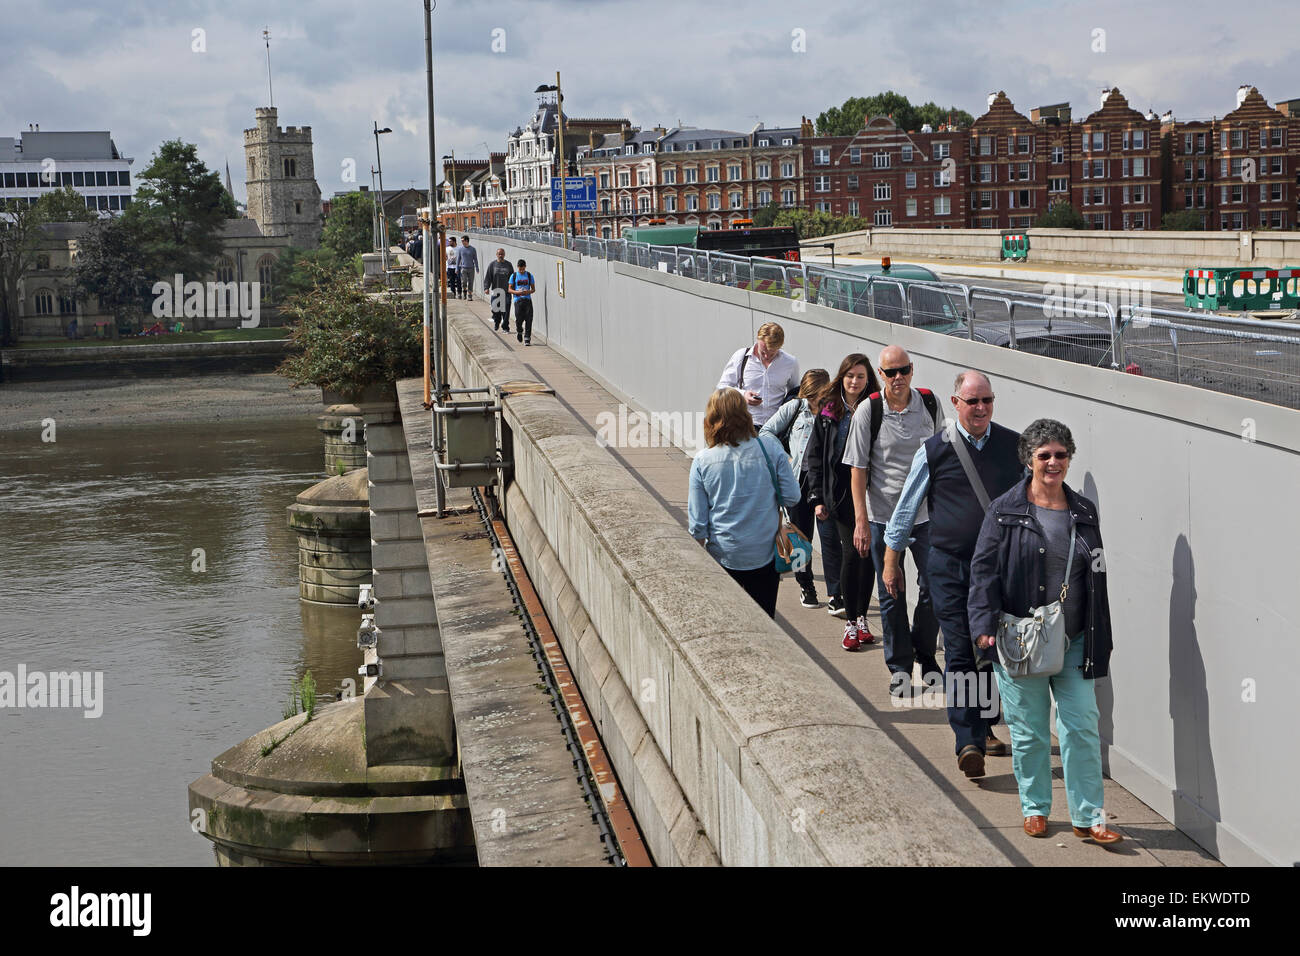 Pedestrians segregated from construction work by a temporary hoarding on Putney Bridge, west London. Bridge closed - Stock Image